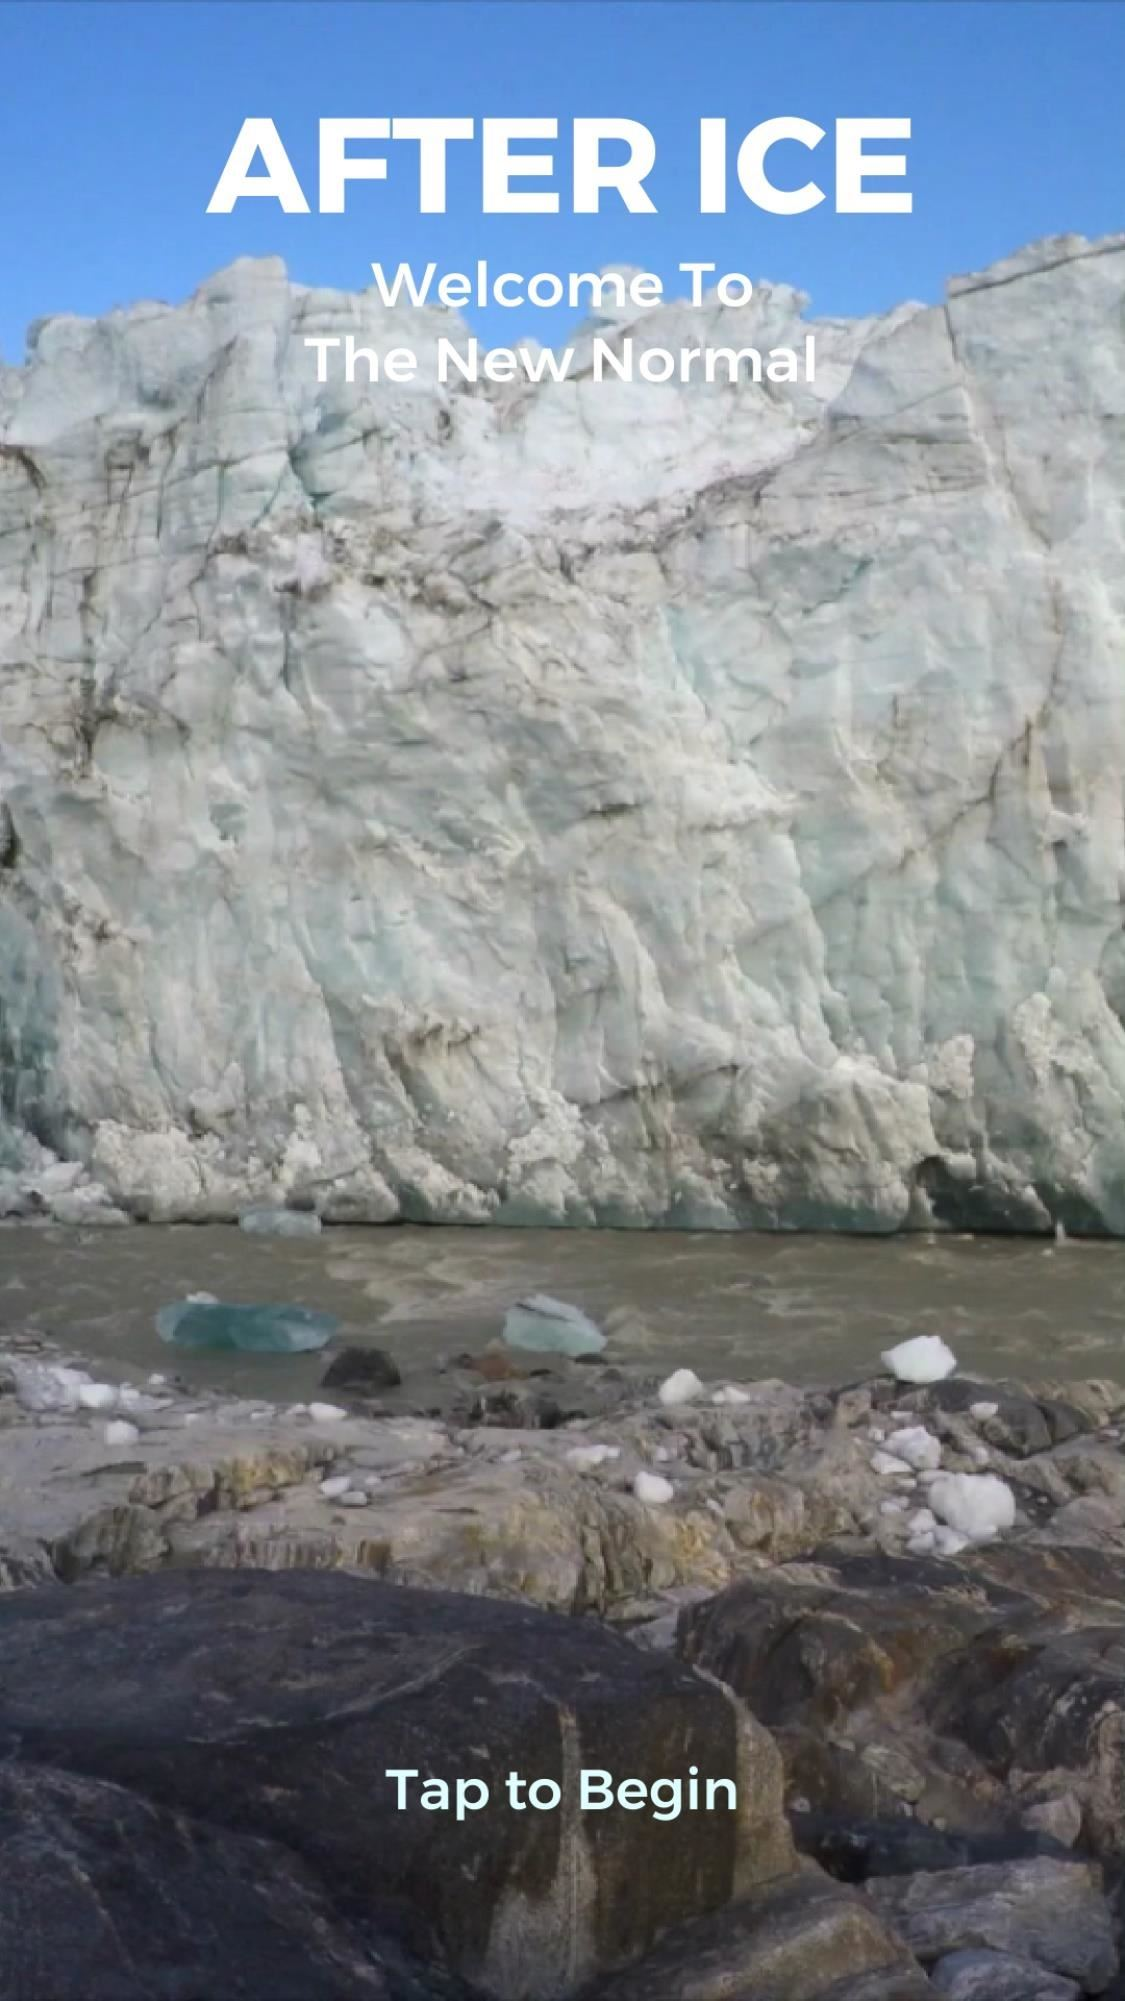 'After Ice' Shows What Climate Change Is About to Do to Our World